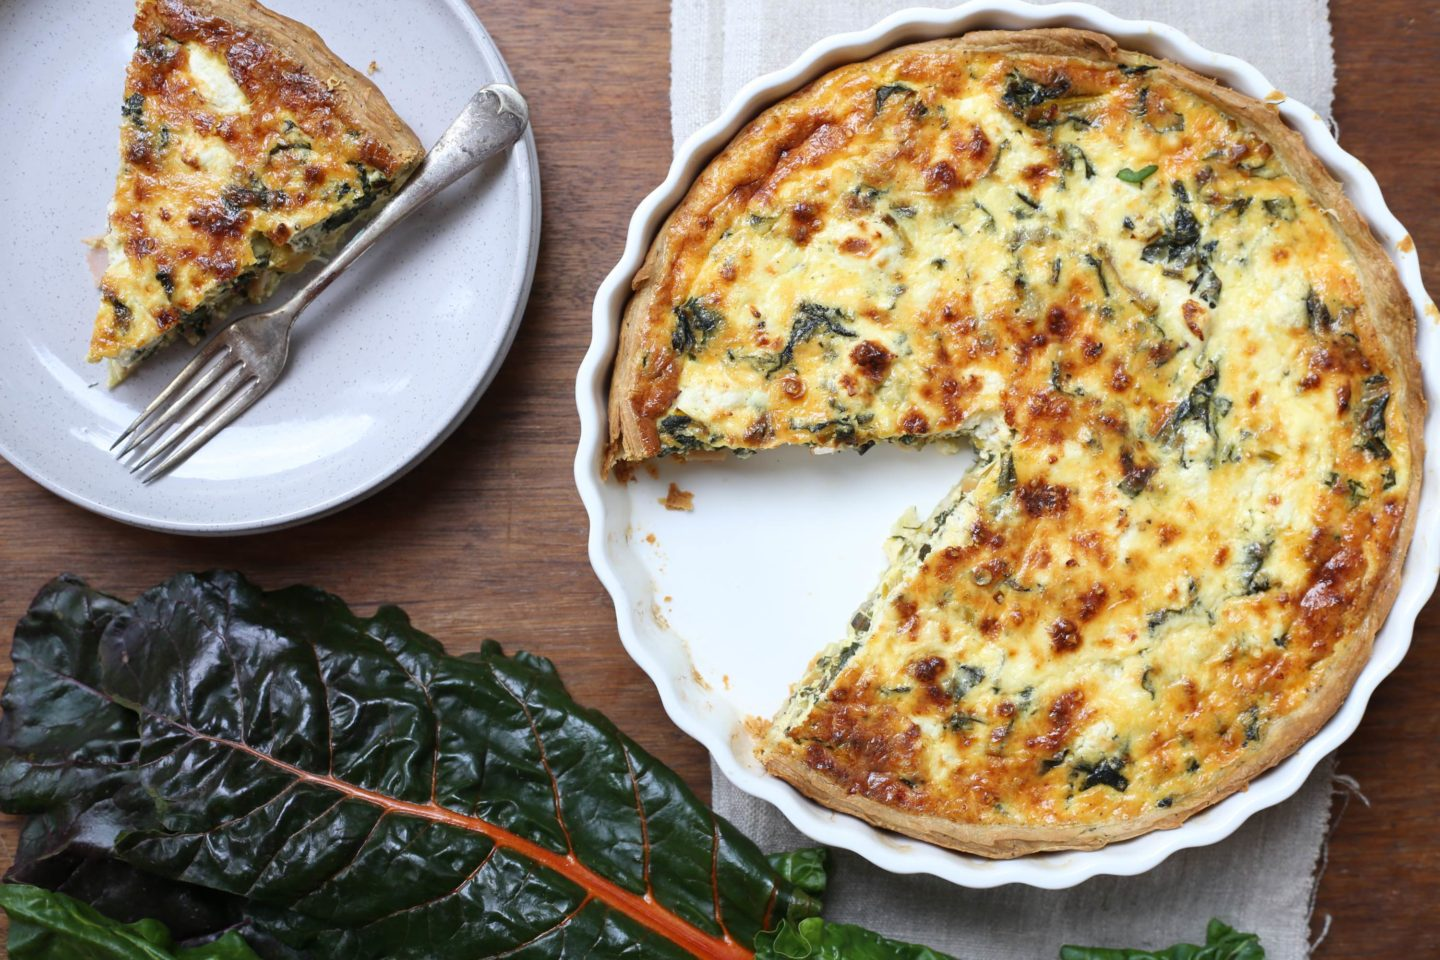 Rainbow chard tart with goats cheese and parmesan